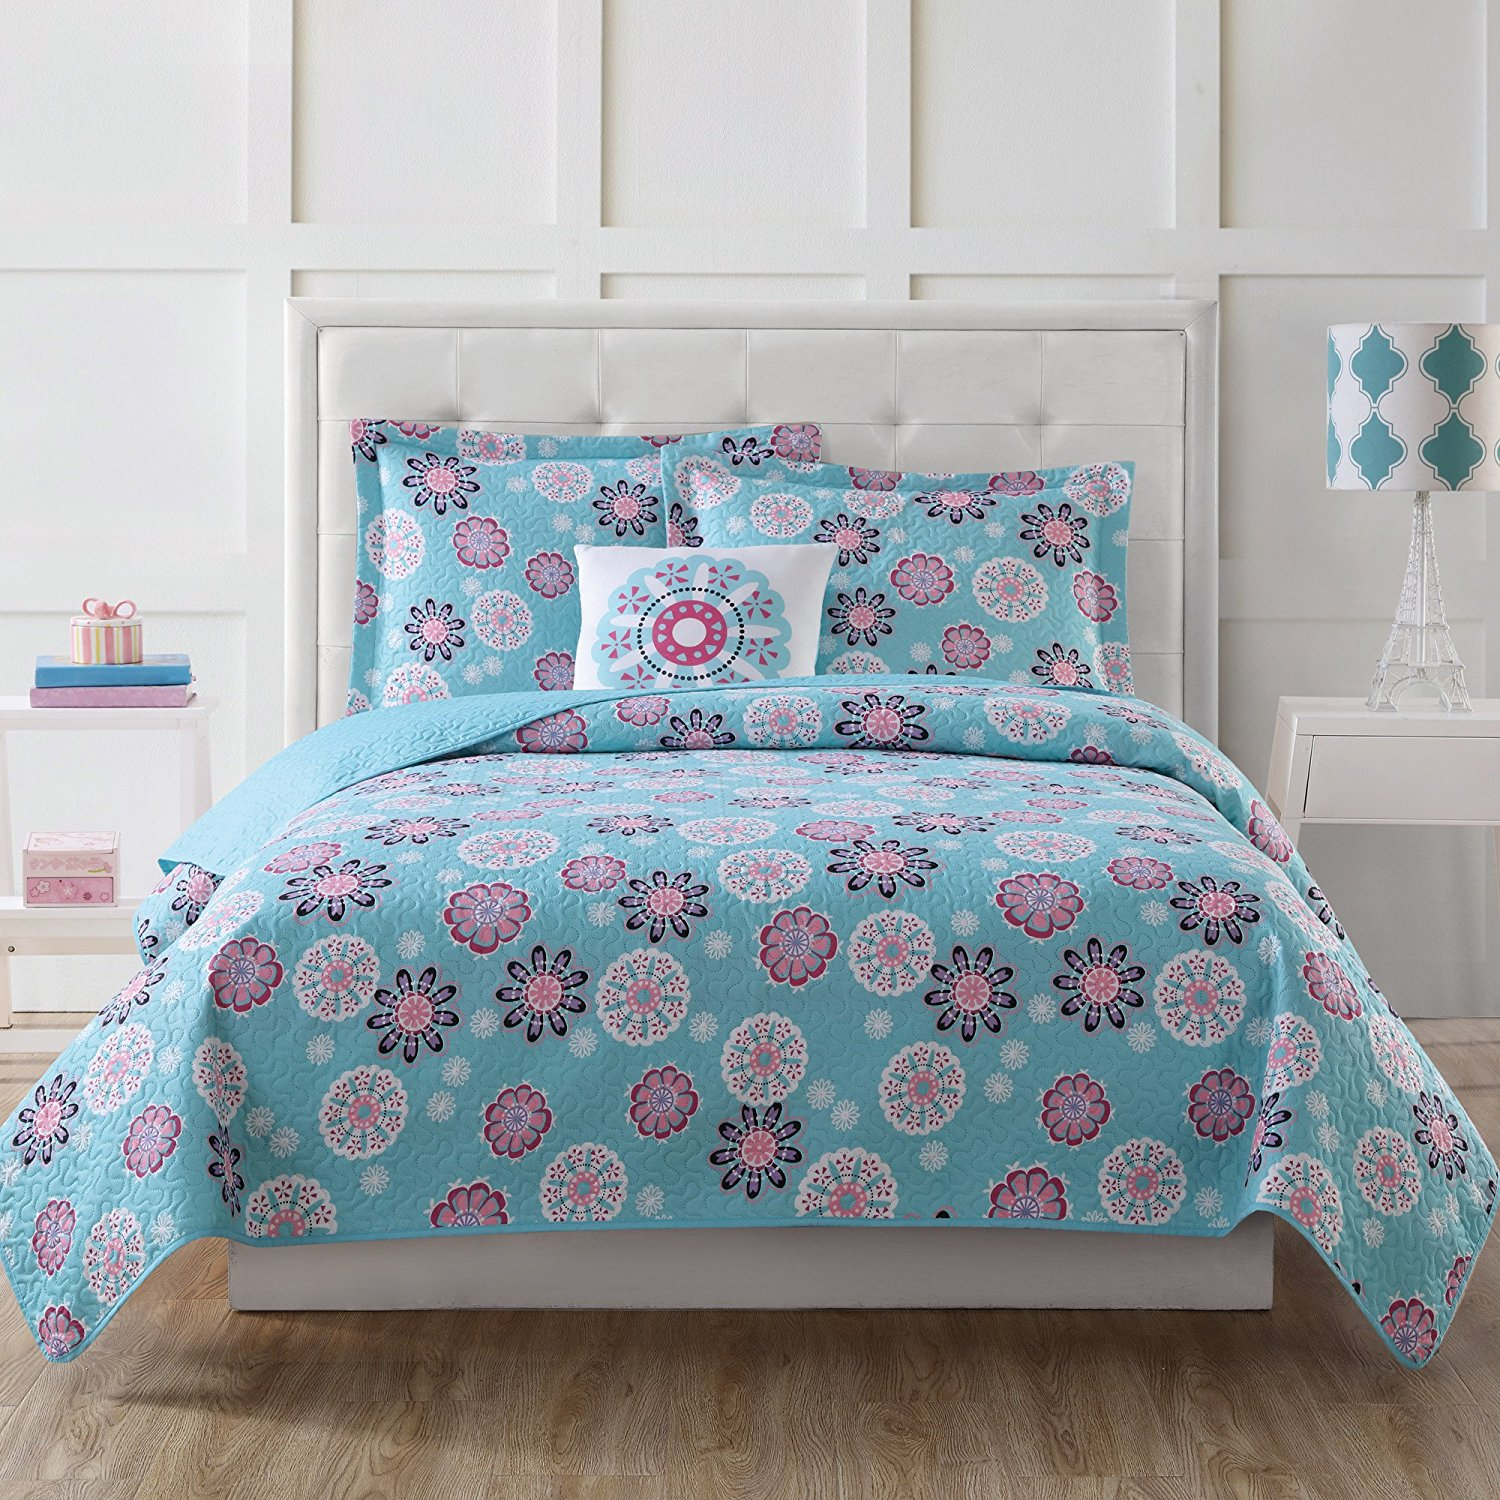 CA 3 Piece Girls Multi Color Medallion Graphic Printed Quilt Set Twin, Aqua Blue White Floral Geometric Design Teen Themed Kids Bedding for Bedroom Eye Catchy Trendy Colorful, Microfiber